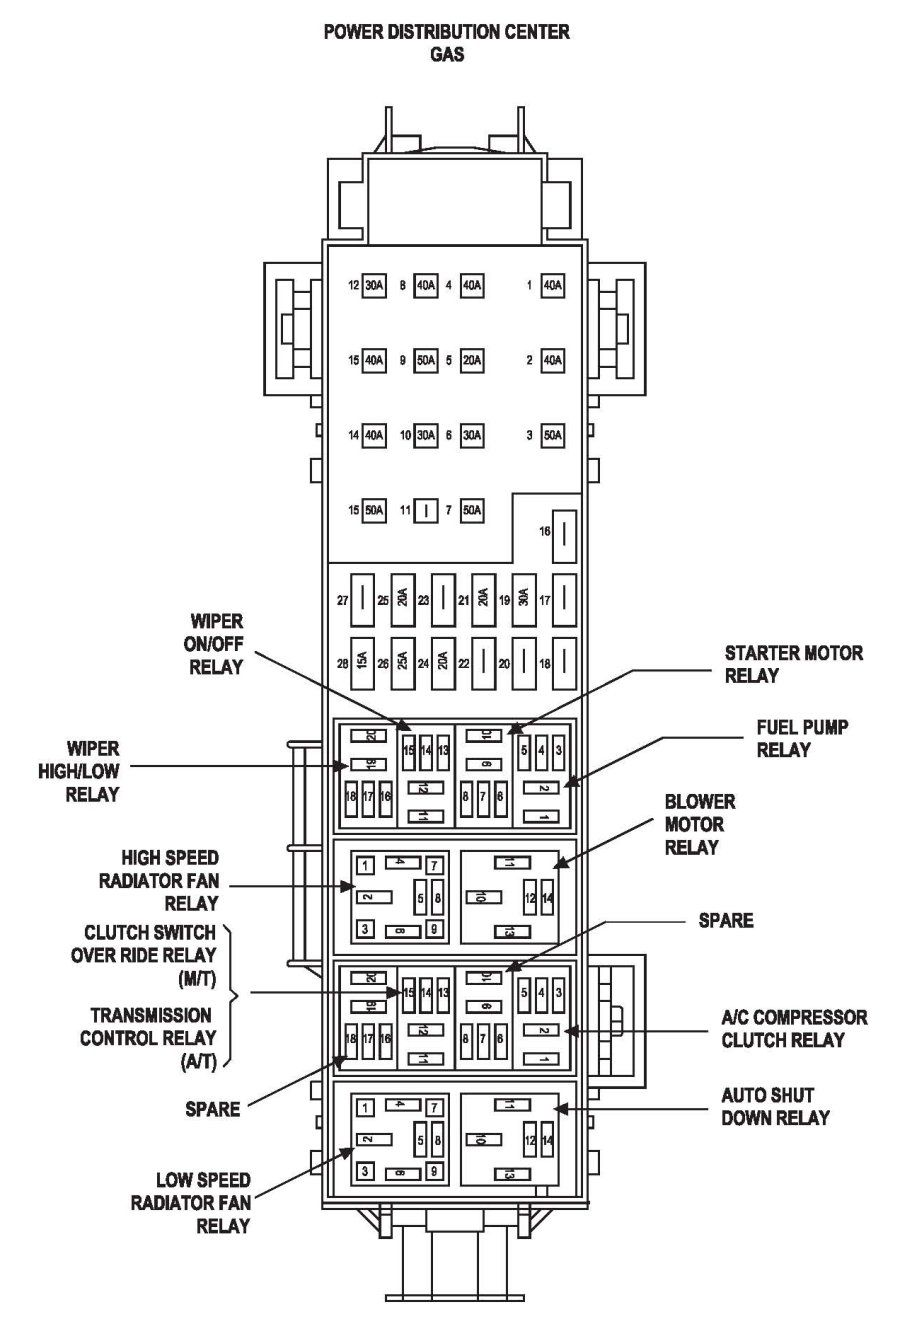 b3536c3739783eb19f827744cc42c3c4 jeep liberty fuse box diagram image details jeep liberty  at gsmx.co